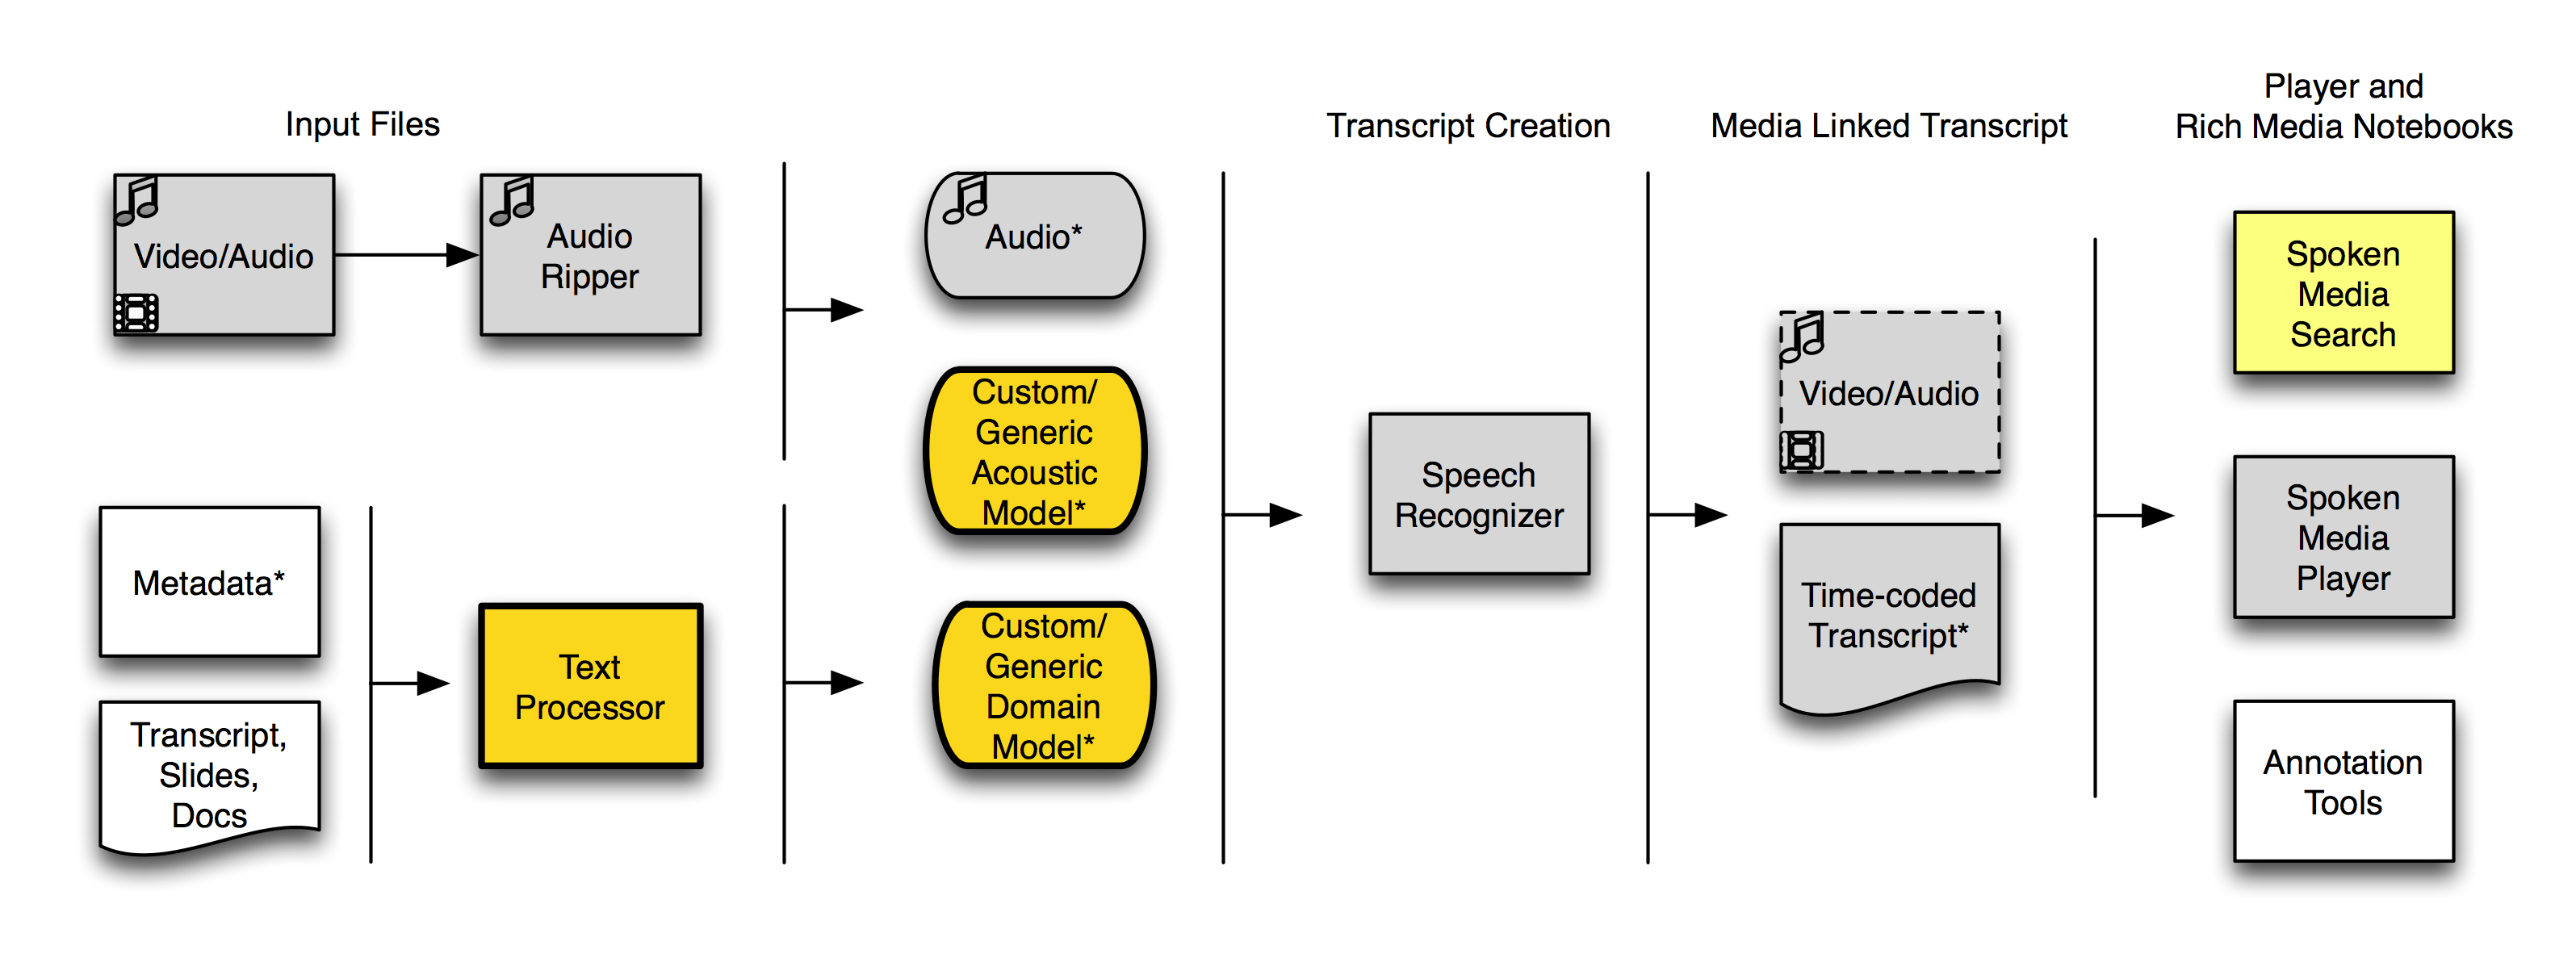 SpokenMedia Workflow-June, 2010